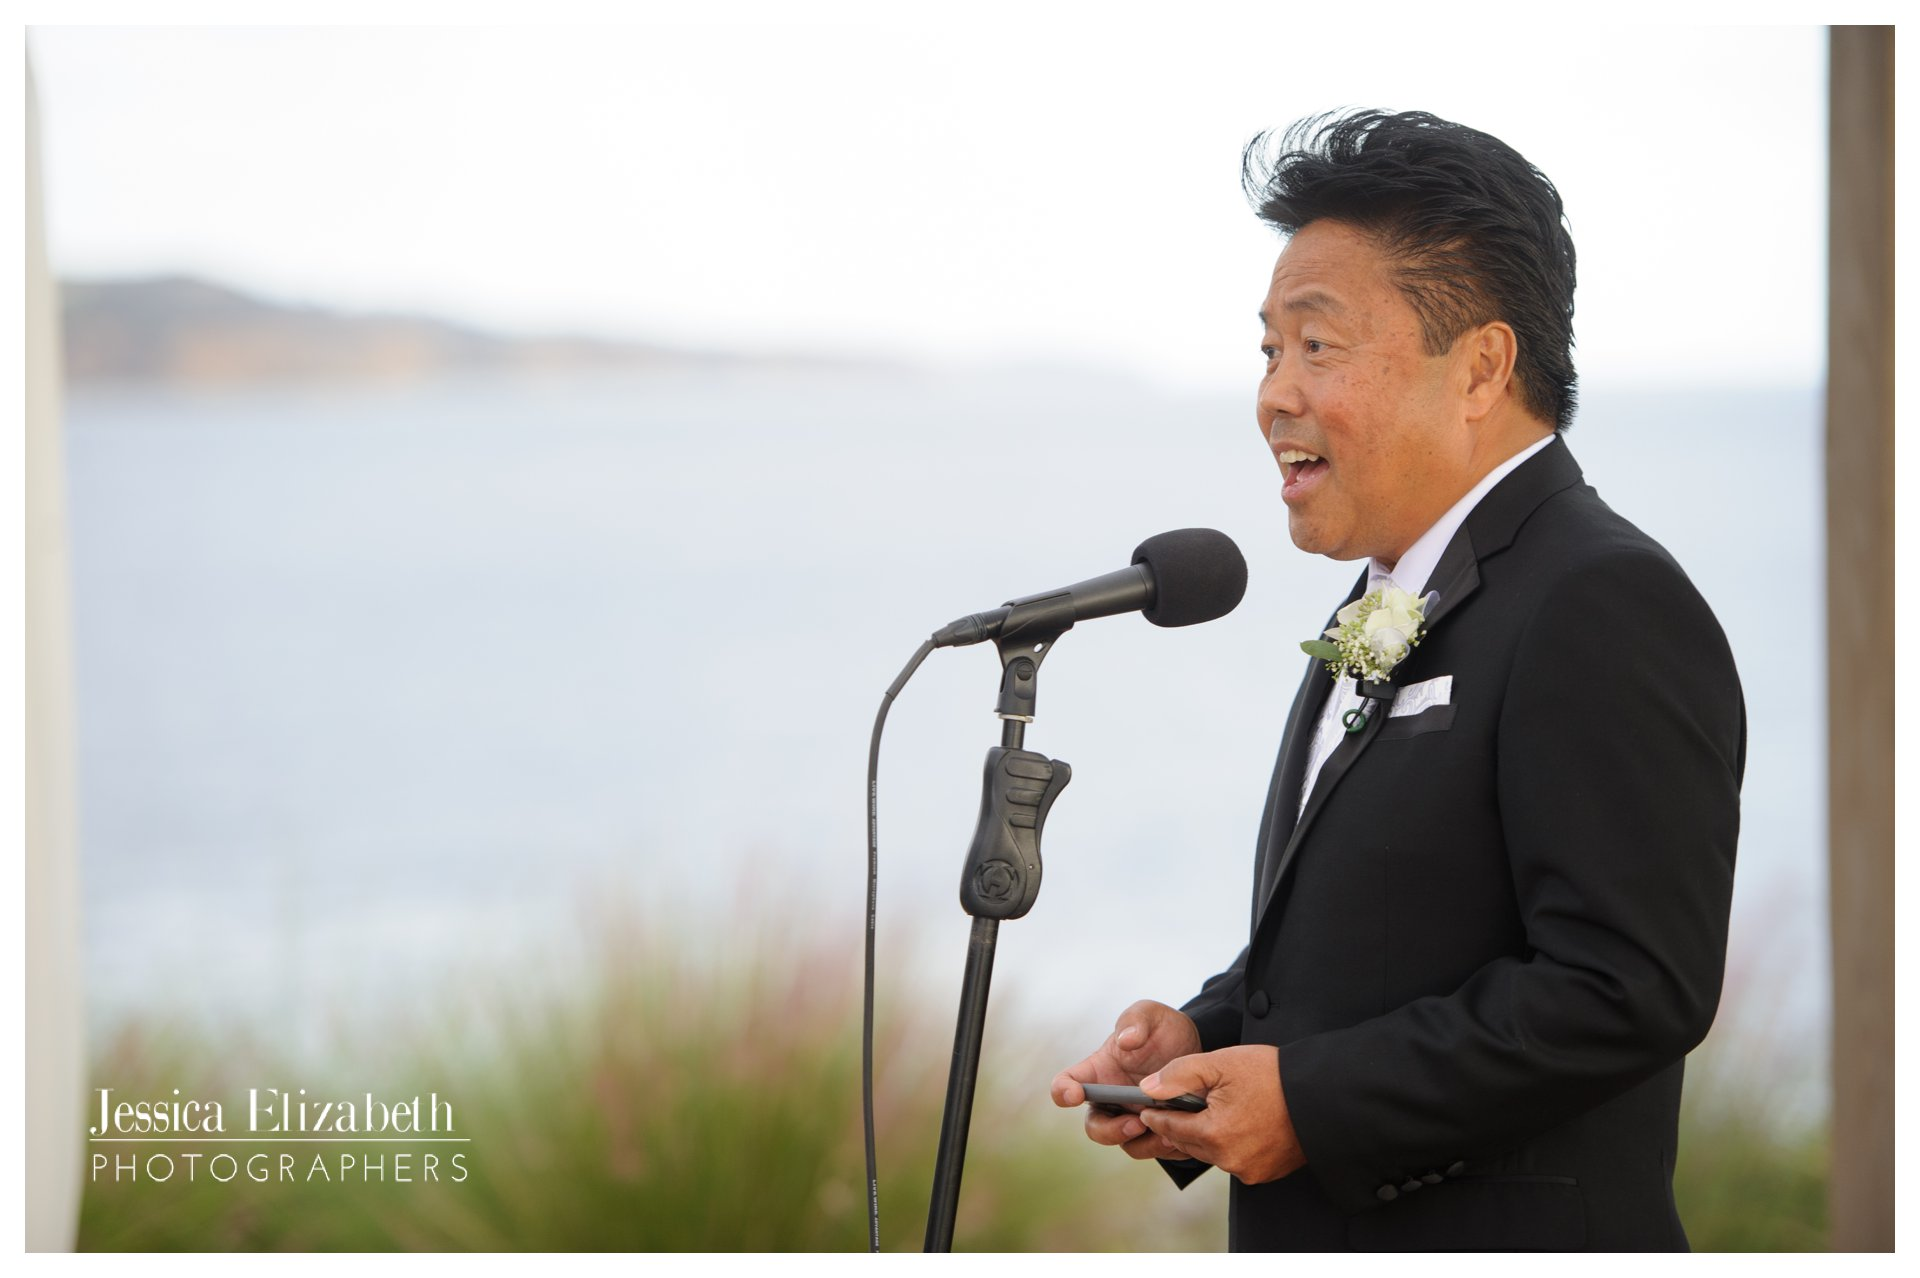 10-Terranea-Palos-Verdes-Wedding-Photography-by-Jessica-Elizabeth-w.jpg